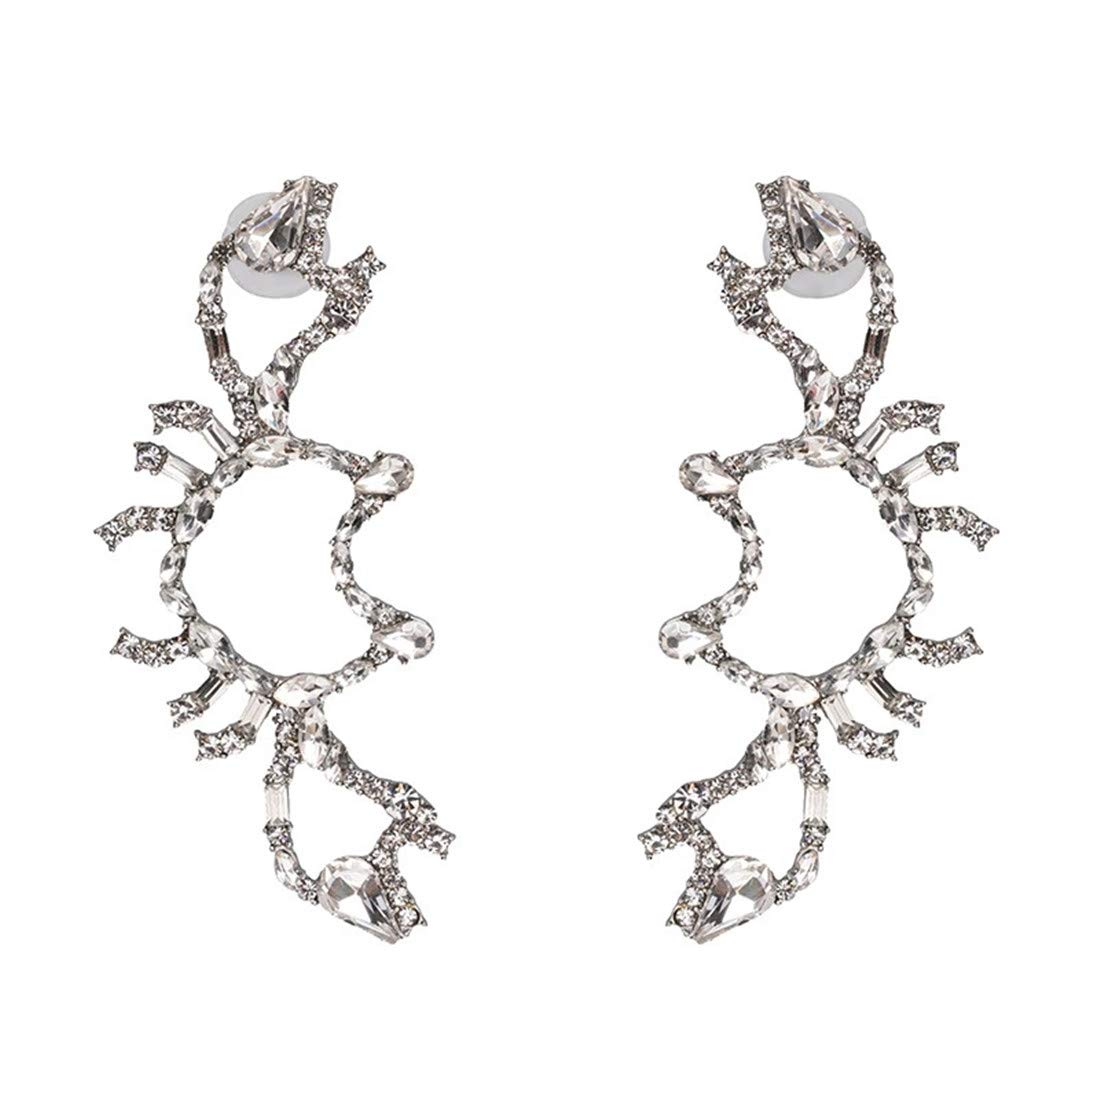 Colorful Crystal Crab Earrings Women's Jewelry for Ladies Women Girl Valentine's Day Gifts by Mrsrui